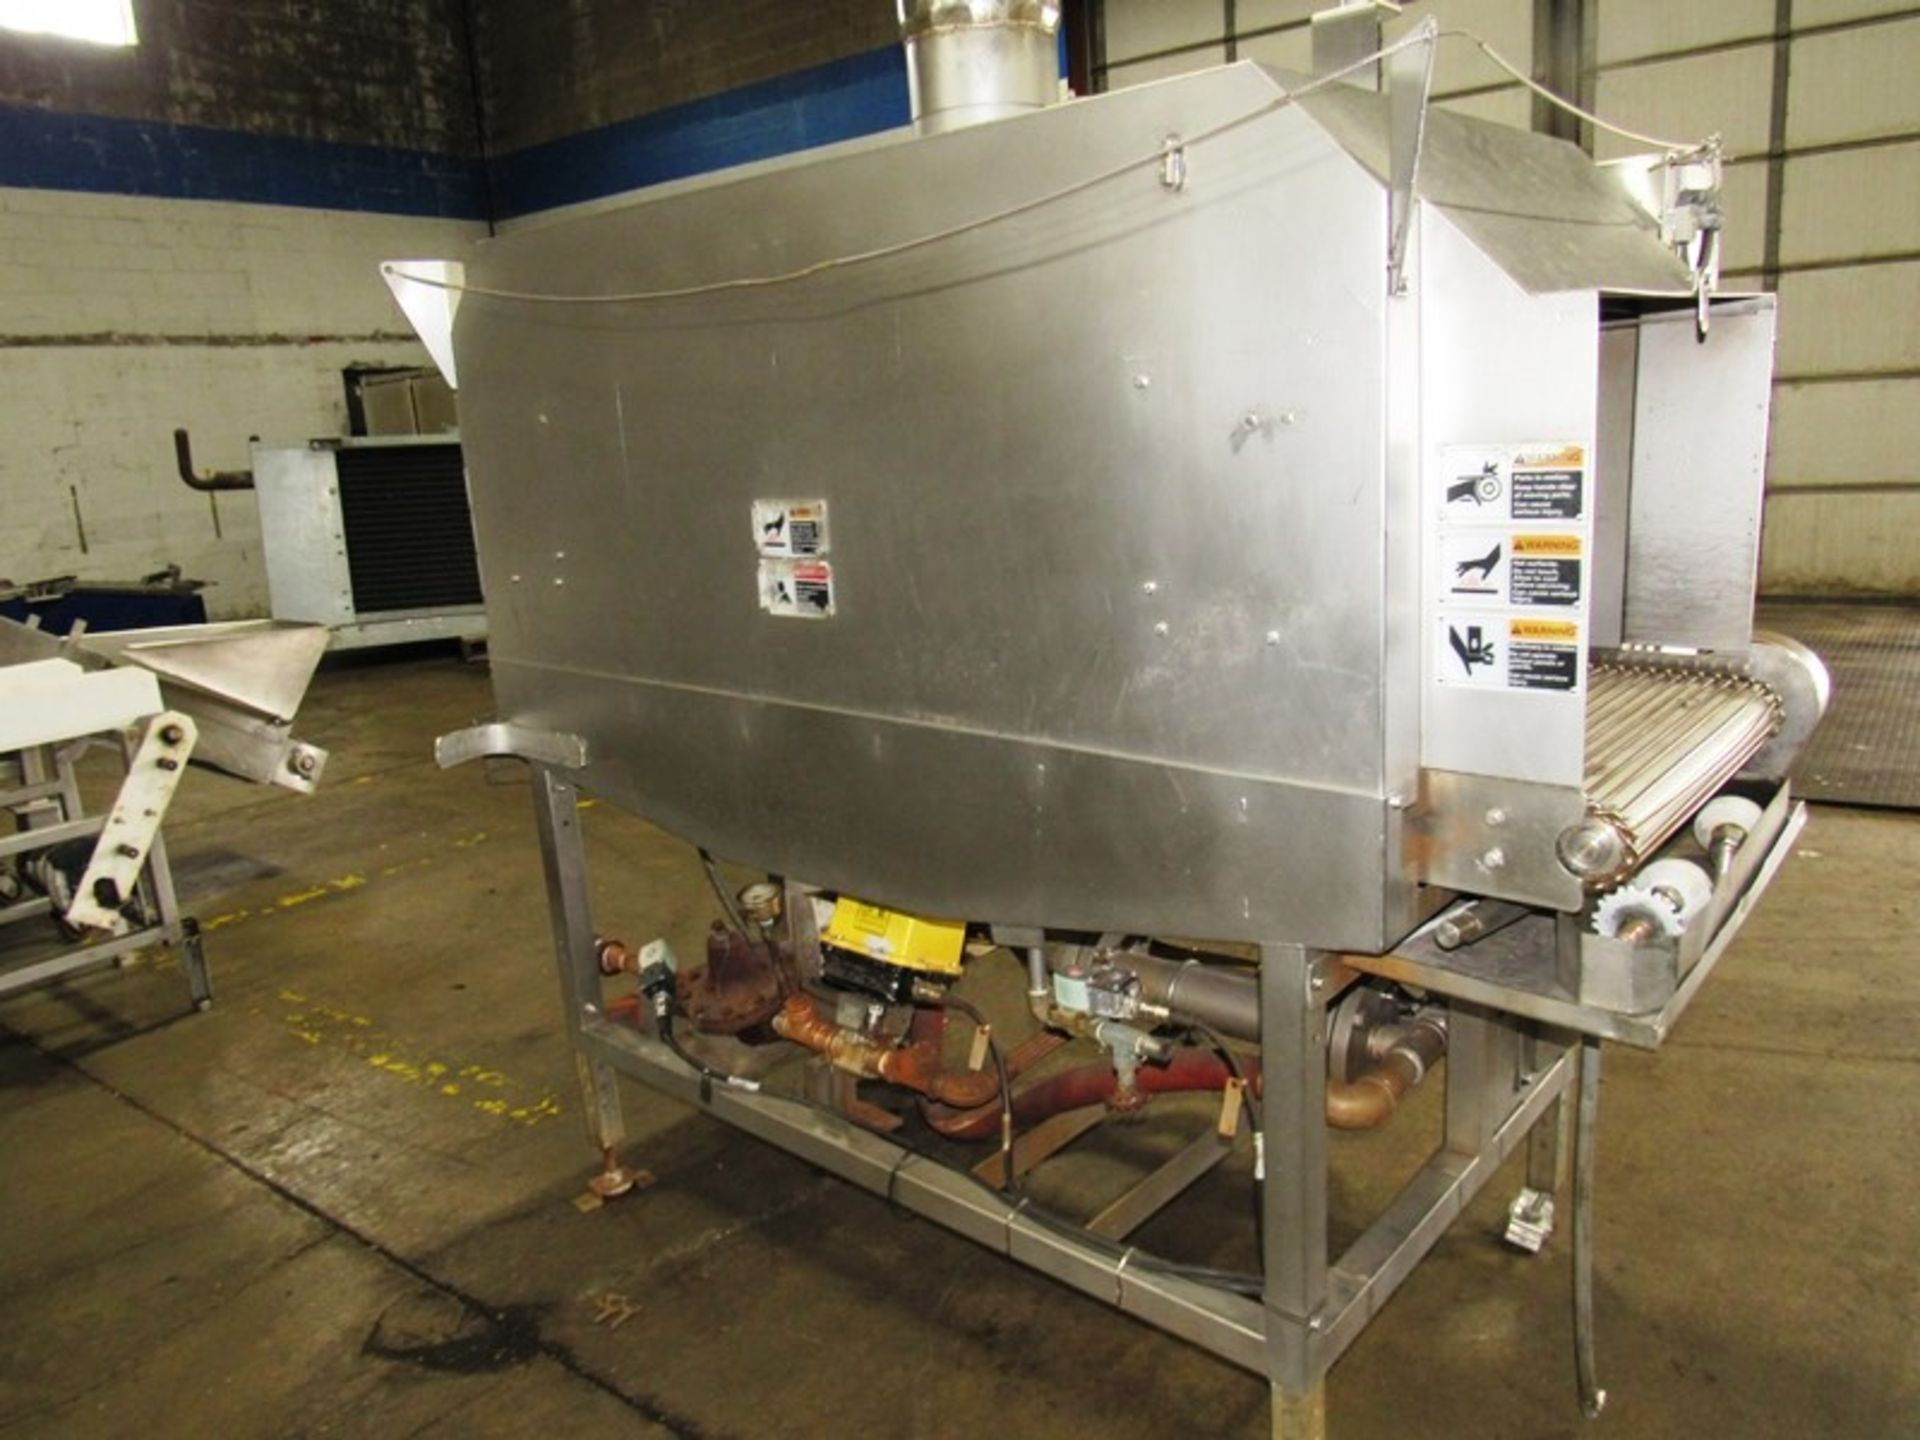 """Cryovac Mdl ST101 Steam/Hot Water Shrink Tunnel, 24"""" Wide X 18"""" Tall X 77"""" Long tunnel, 2 h.p. - Image 2 of 8"""